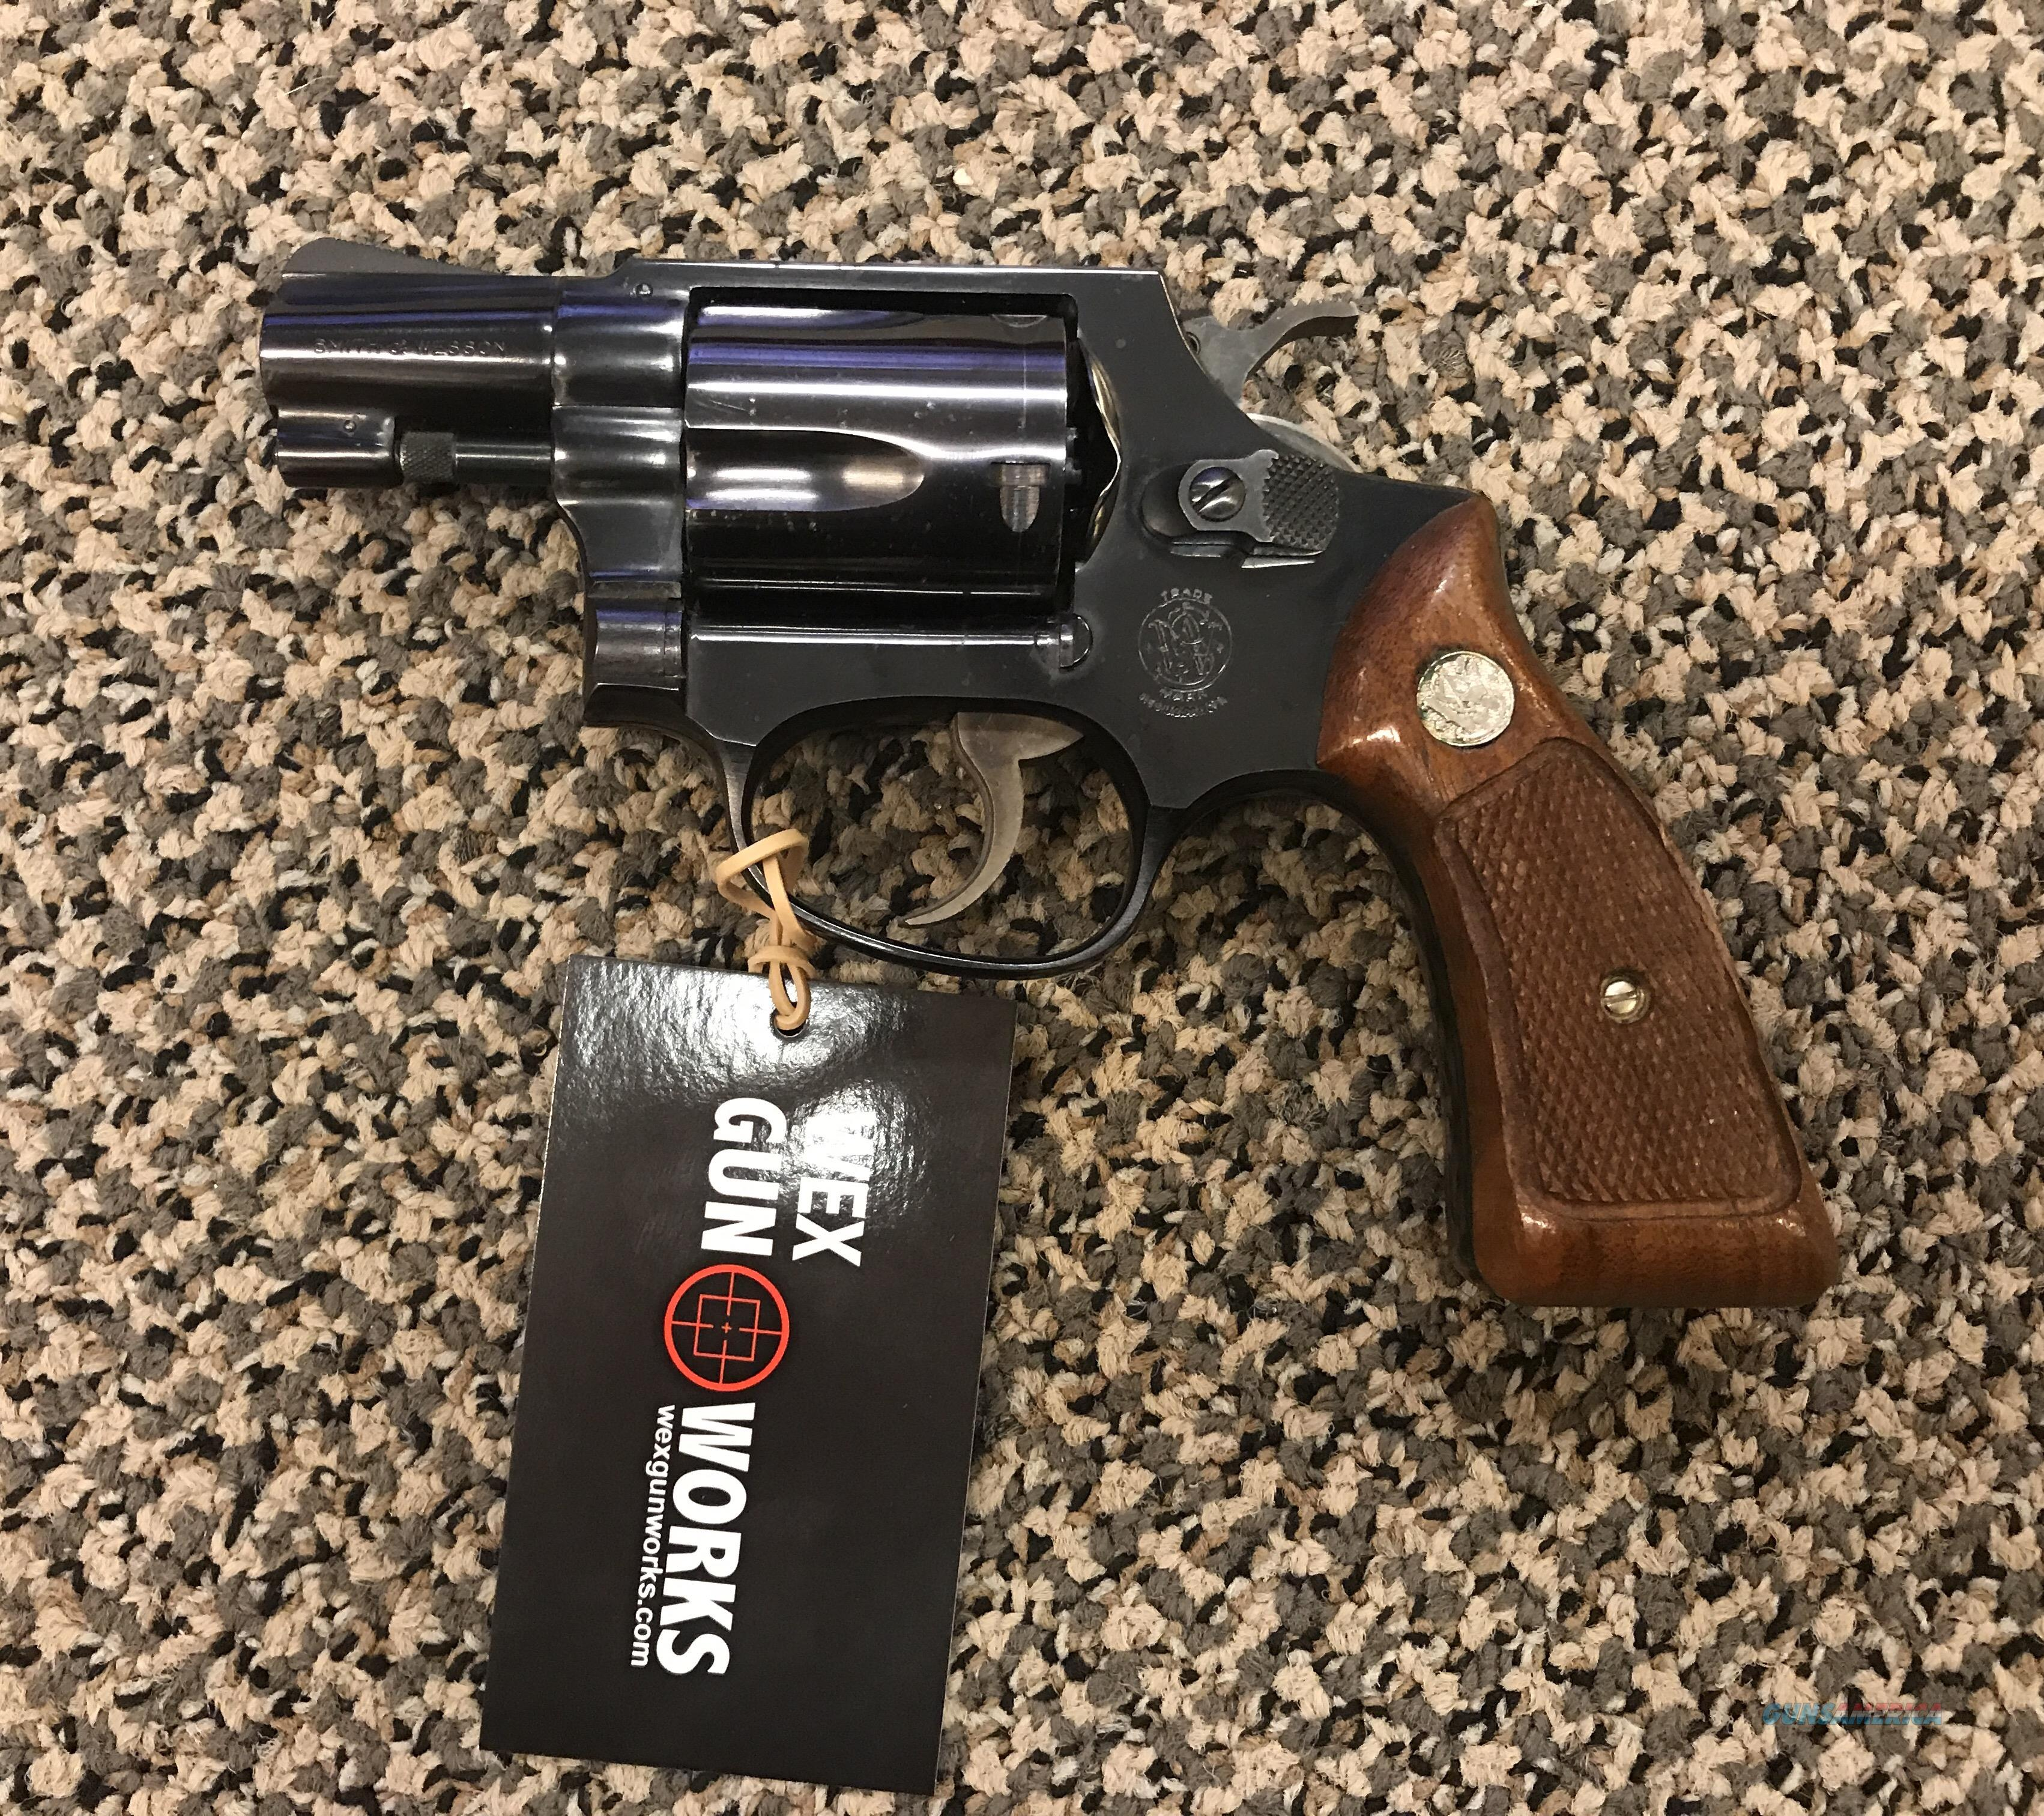 S&W MODEL 36 NO DASH THIRTY EIGHT SPECIAL 1 5/8 INCH BBL 5 SHOT EXCELLENT CONDITION  Guns > Pistols > Smith & Wesson Revolvers > Small Frame ( J )